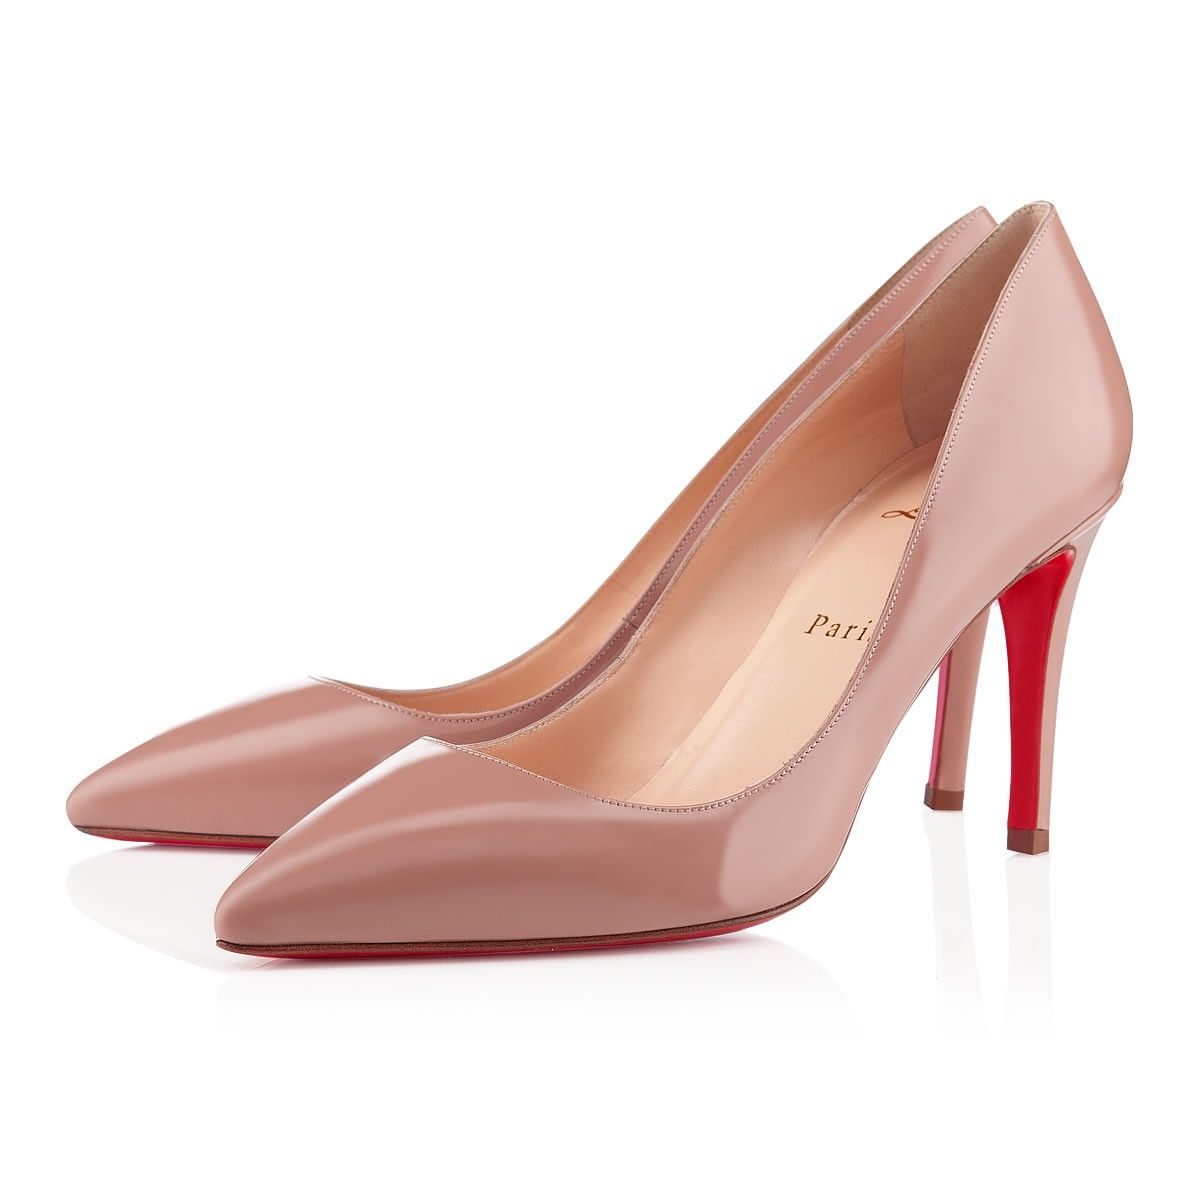 100% authentic 49d17 7ddcc Pigalle 85 Nude Patent Leather - Women Shoes - Christian ...